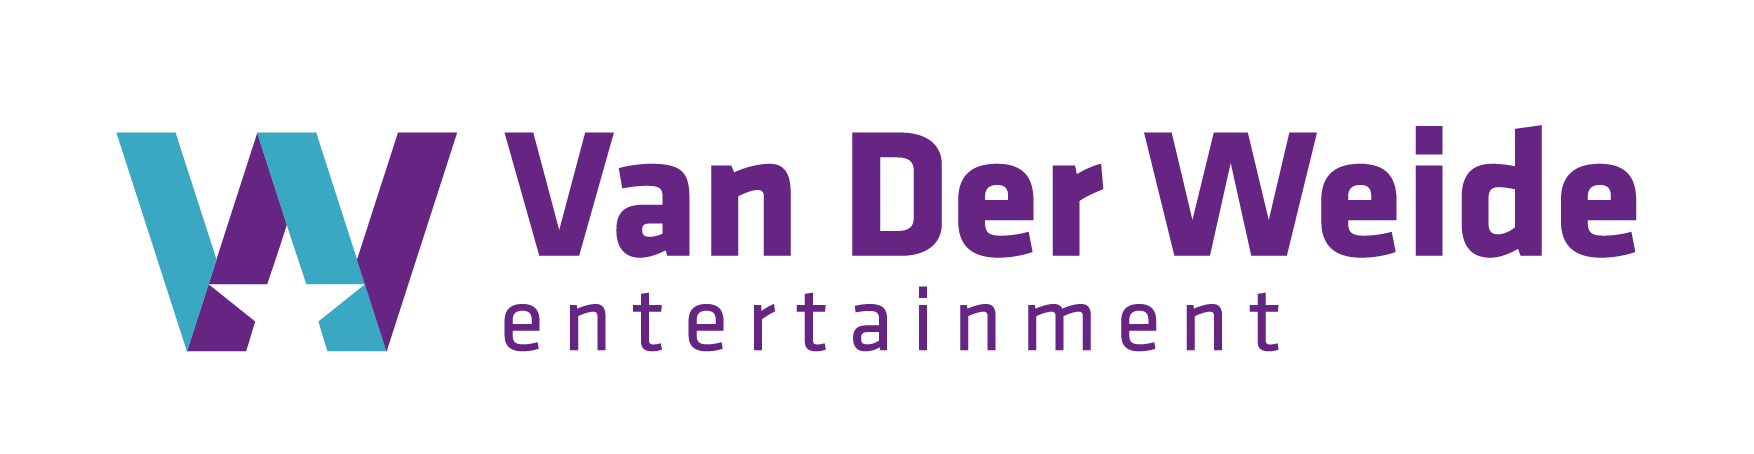 Extra Entertainment | Van Der Weide Entertainment